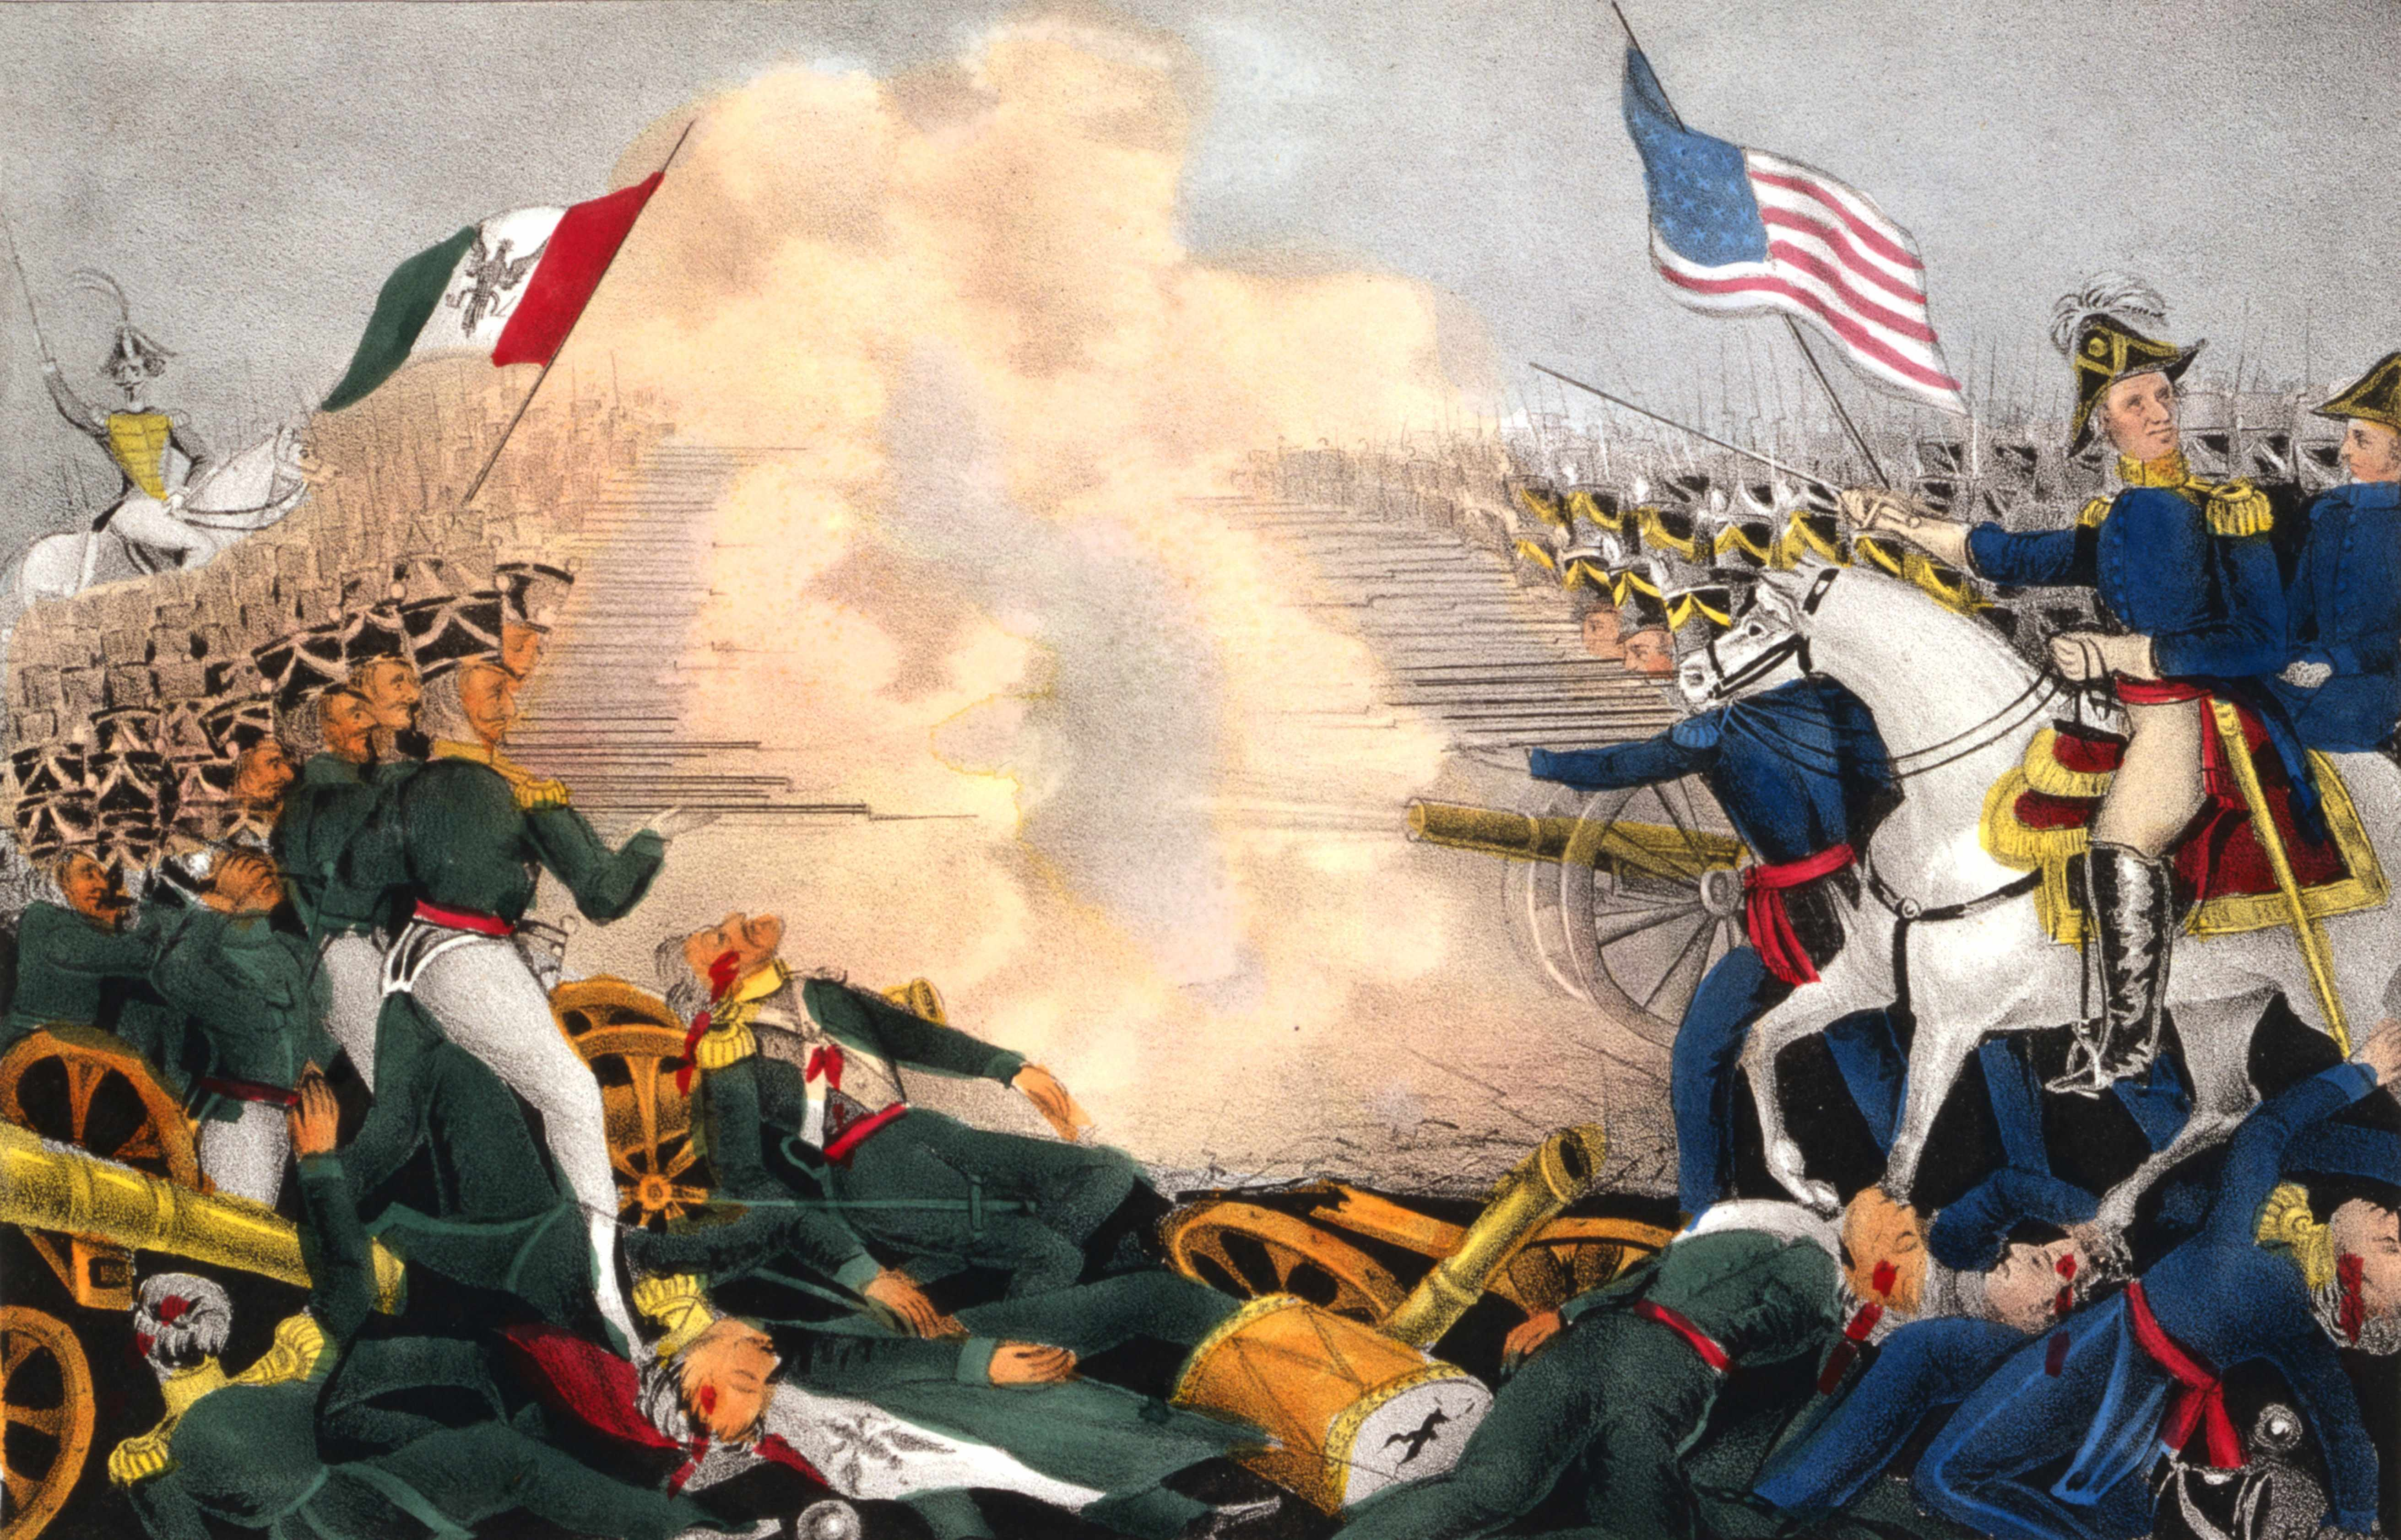 """A painting depicting the Mexican-American War of 1846–48: battle of Buena Vista, also known as battle of Angostura. Since that traumatic war, the US-Mexico bilateral relationship """"has experienced sharp ups-and-downs; but there have also been underlying continuities,"""" says Professor Alan Knight. (Photo by Universal History Archive/Getty Images)"""